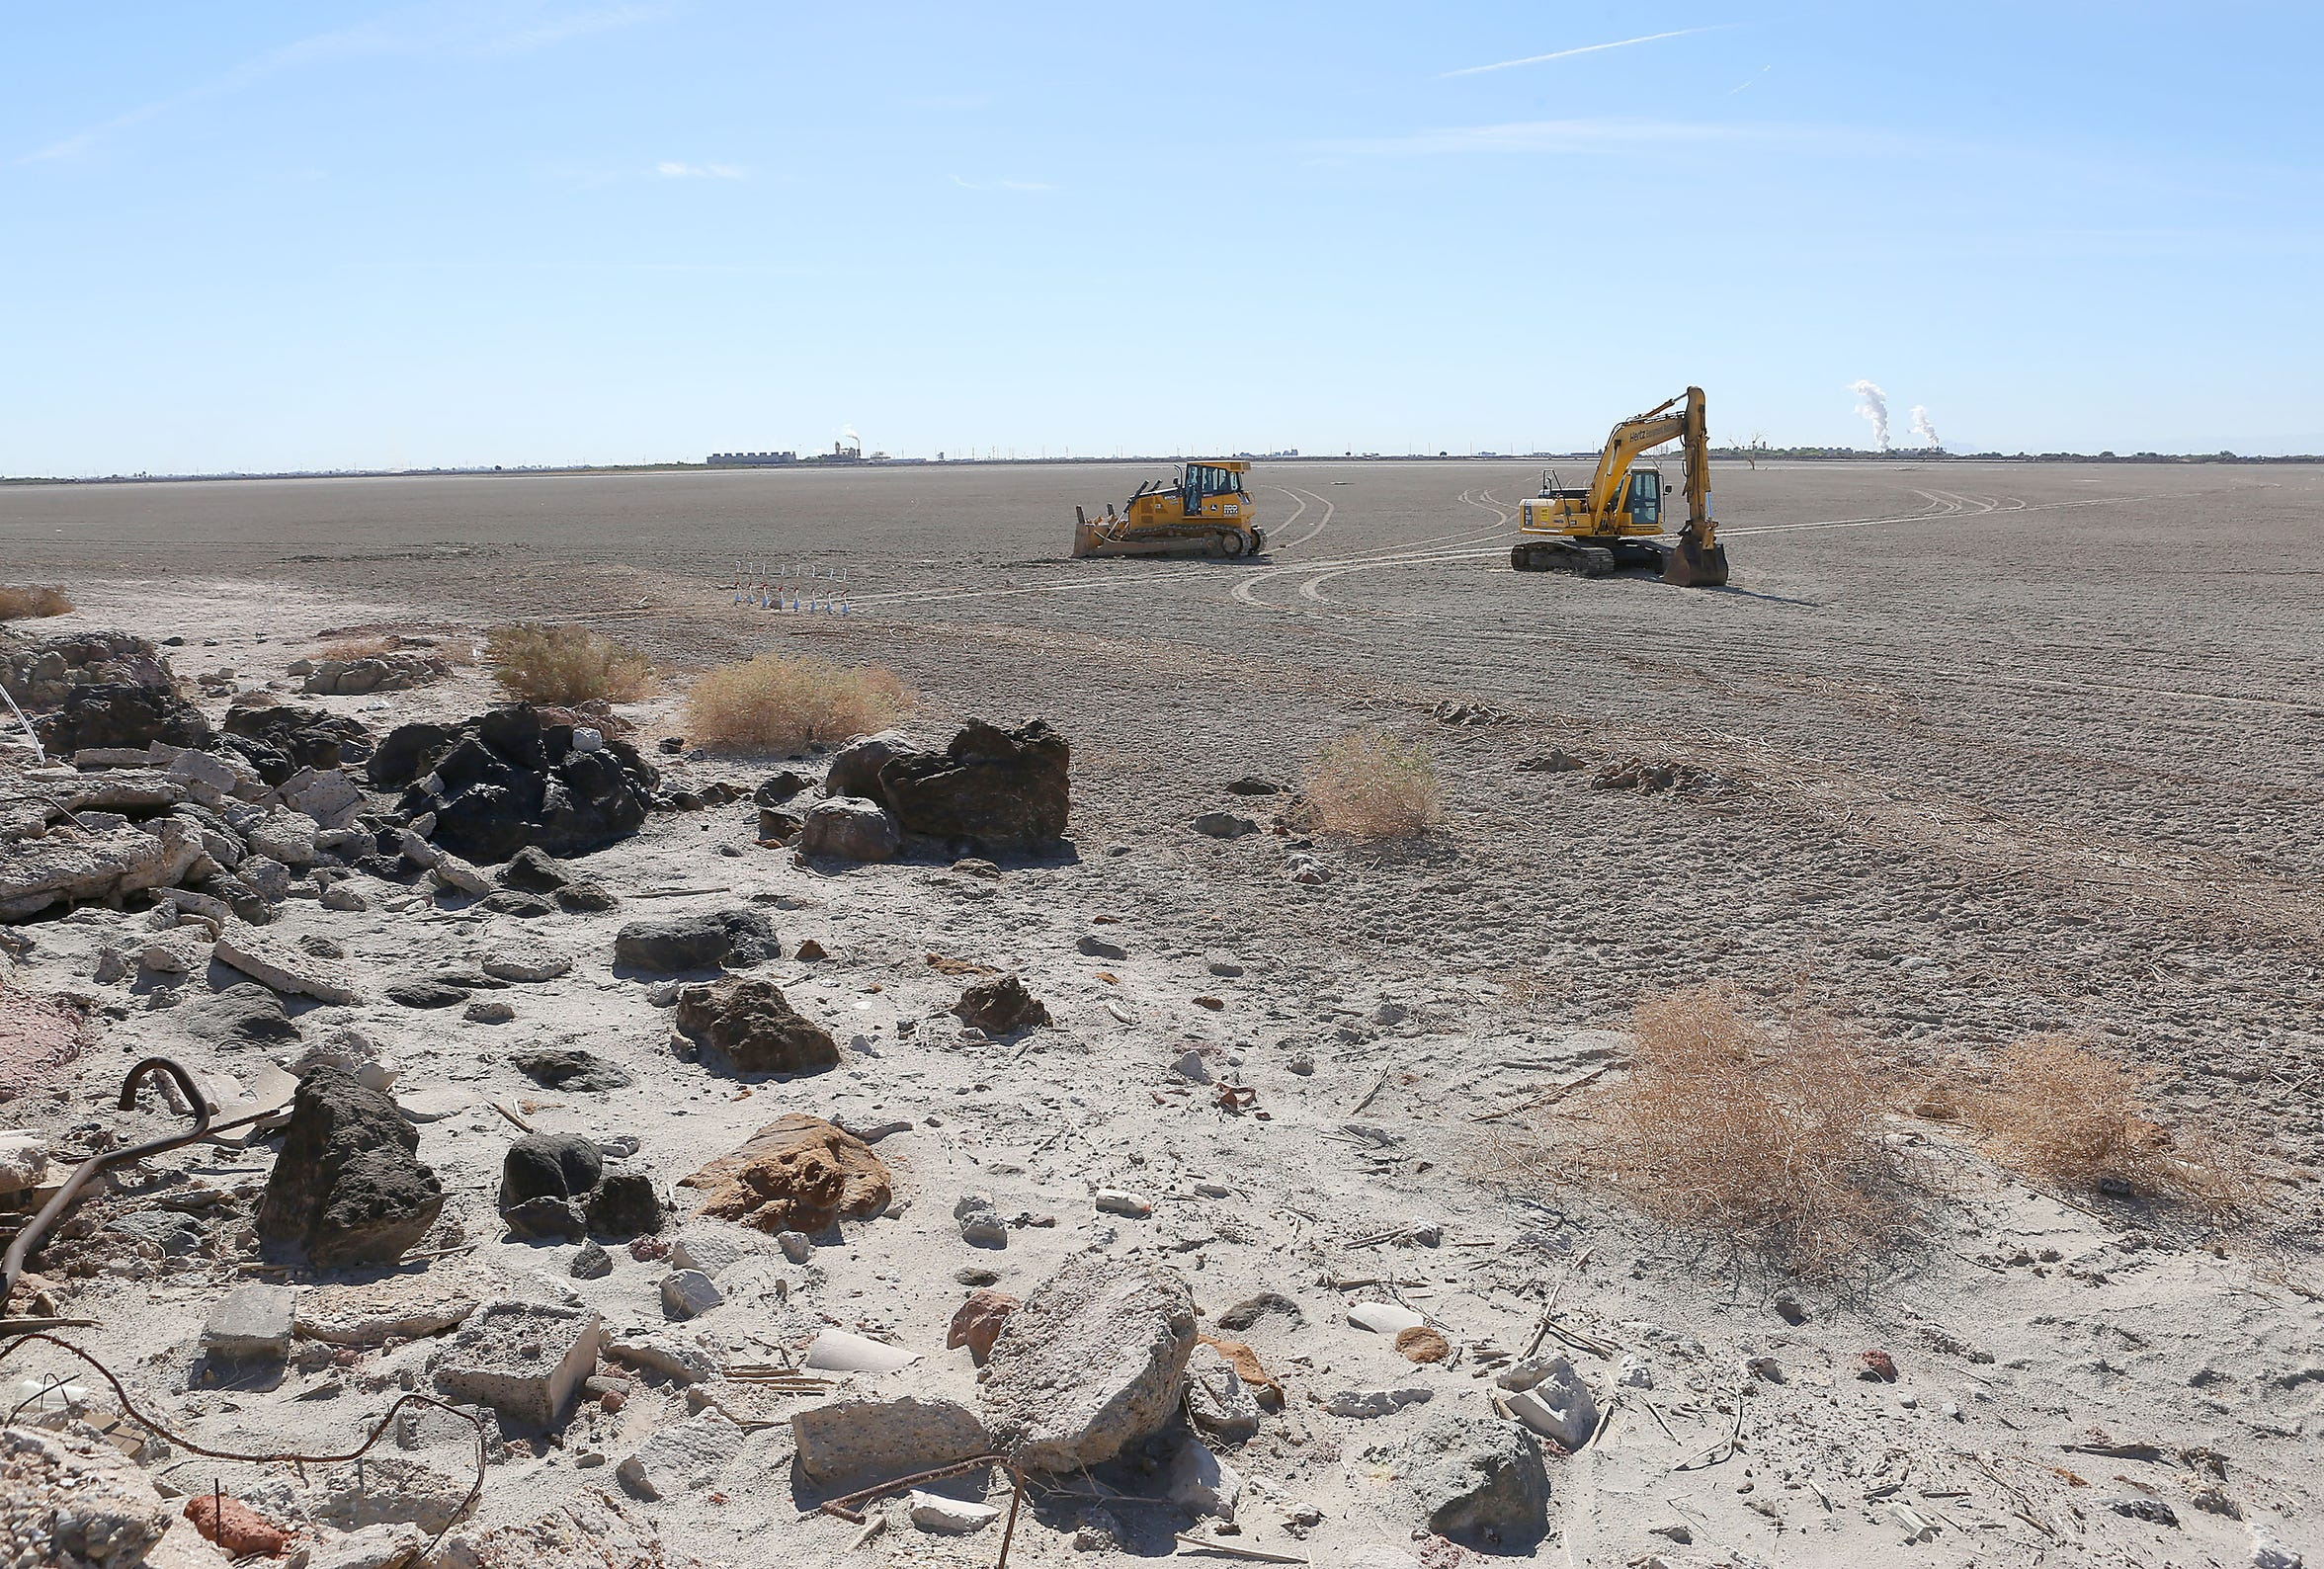 The Red Hill Bay Restoration Project will cover about 500 acres of exposed playa with wetlands habitat. The site is seen here on Nov. 5, 2015.